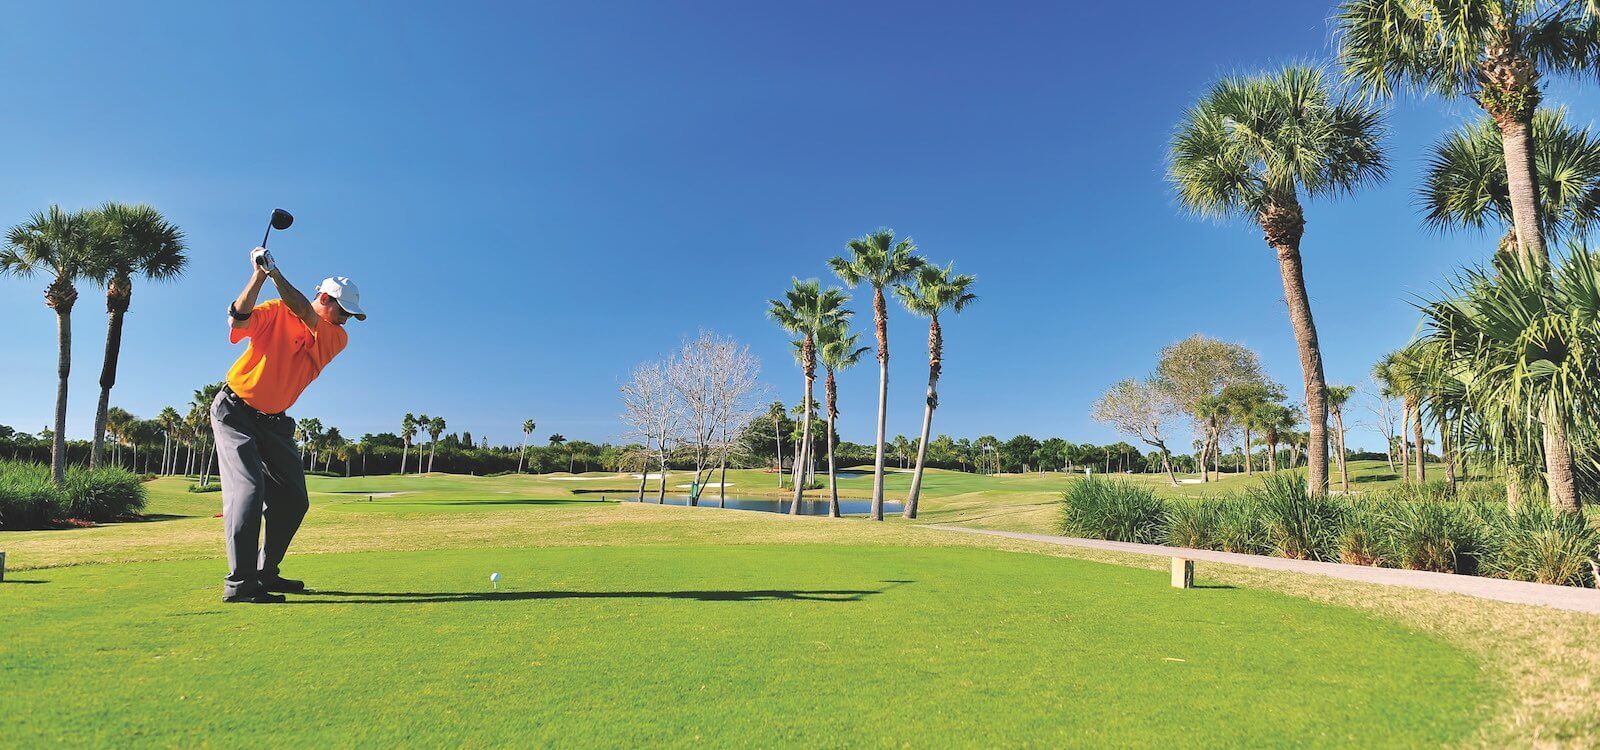 MustDo.com | Must Do Visitor Guides best places to play golf in Naples, Florida.